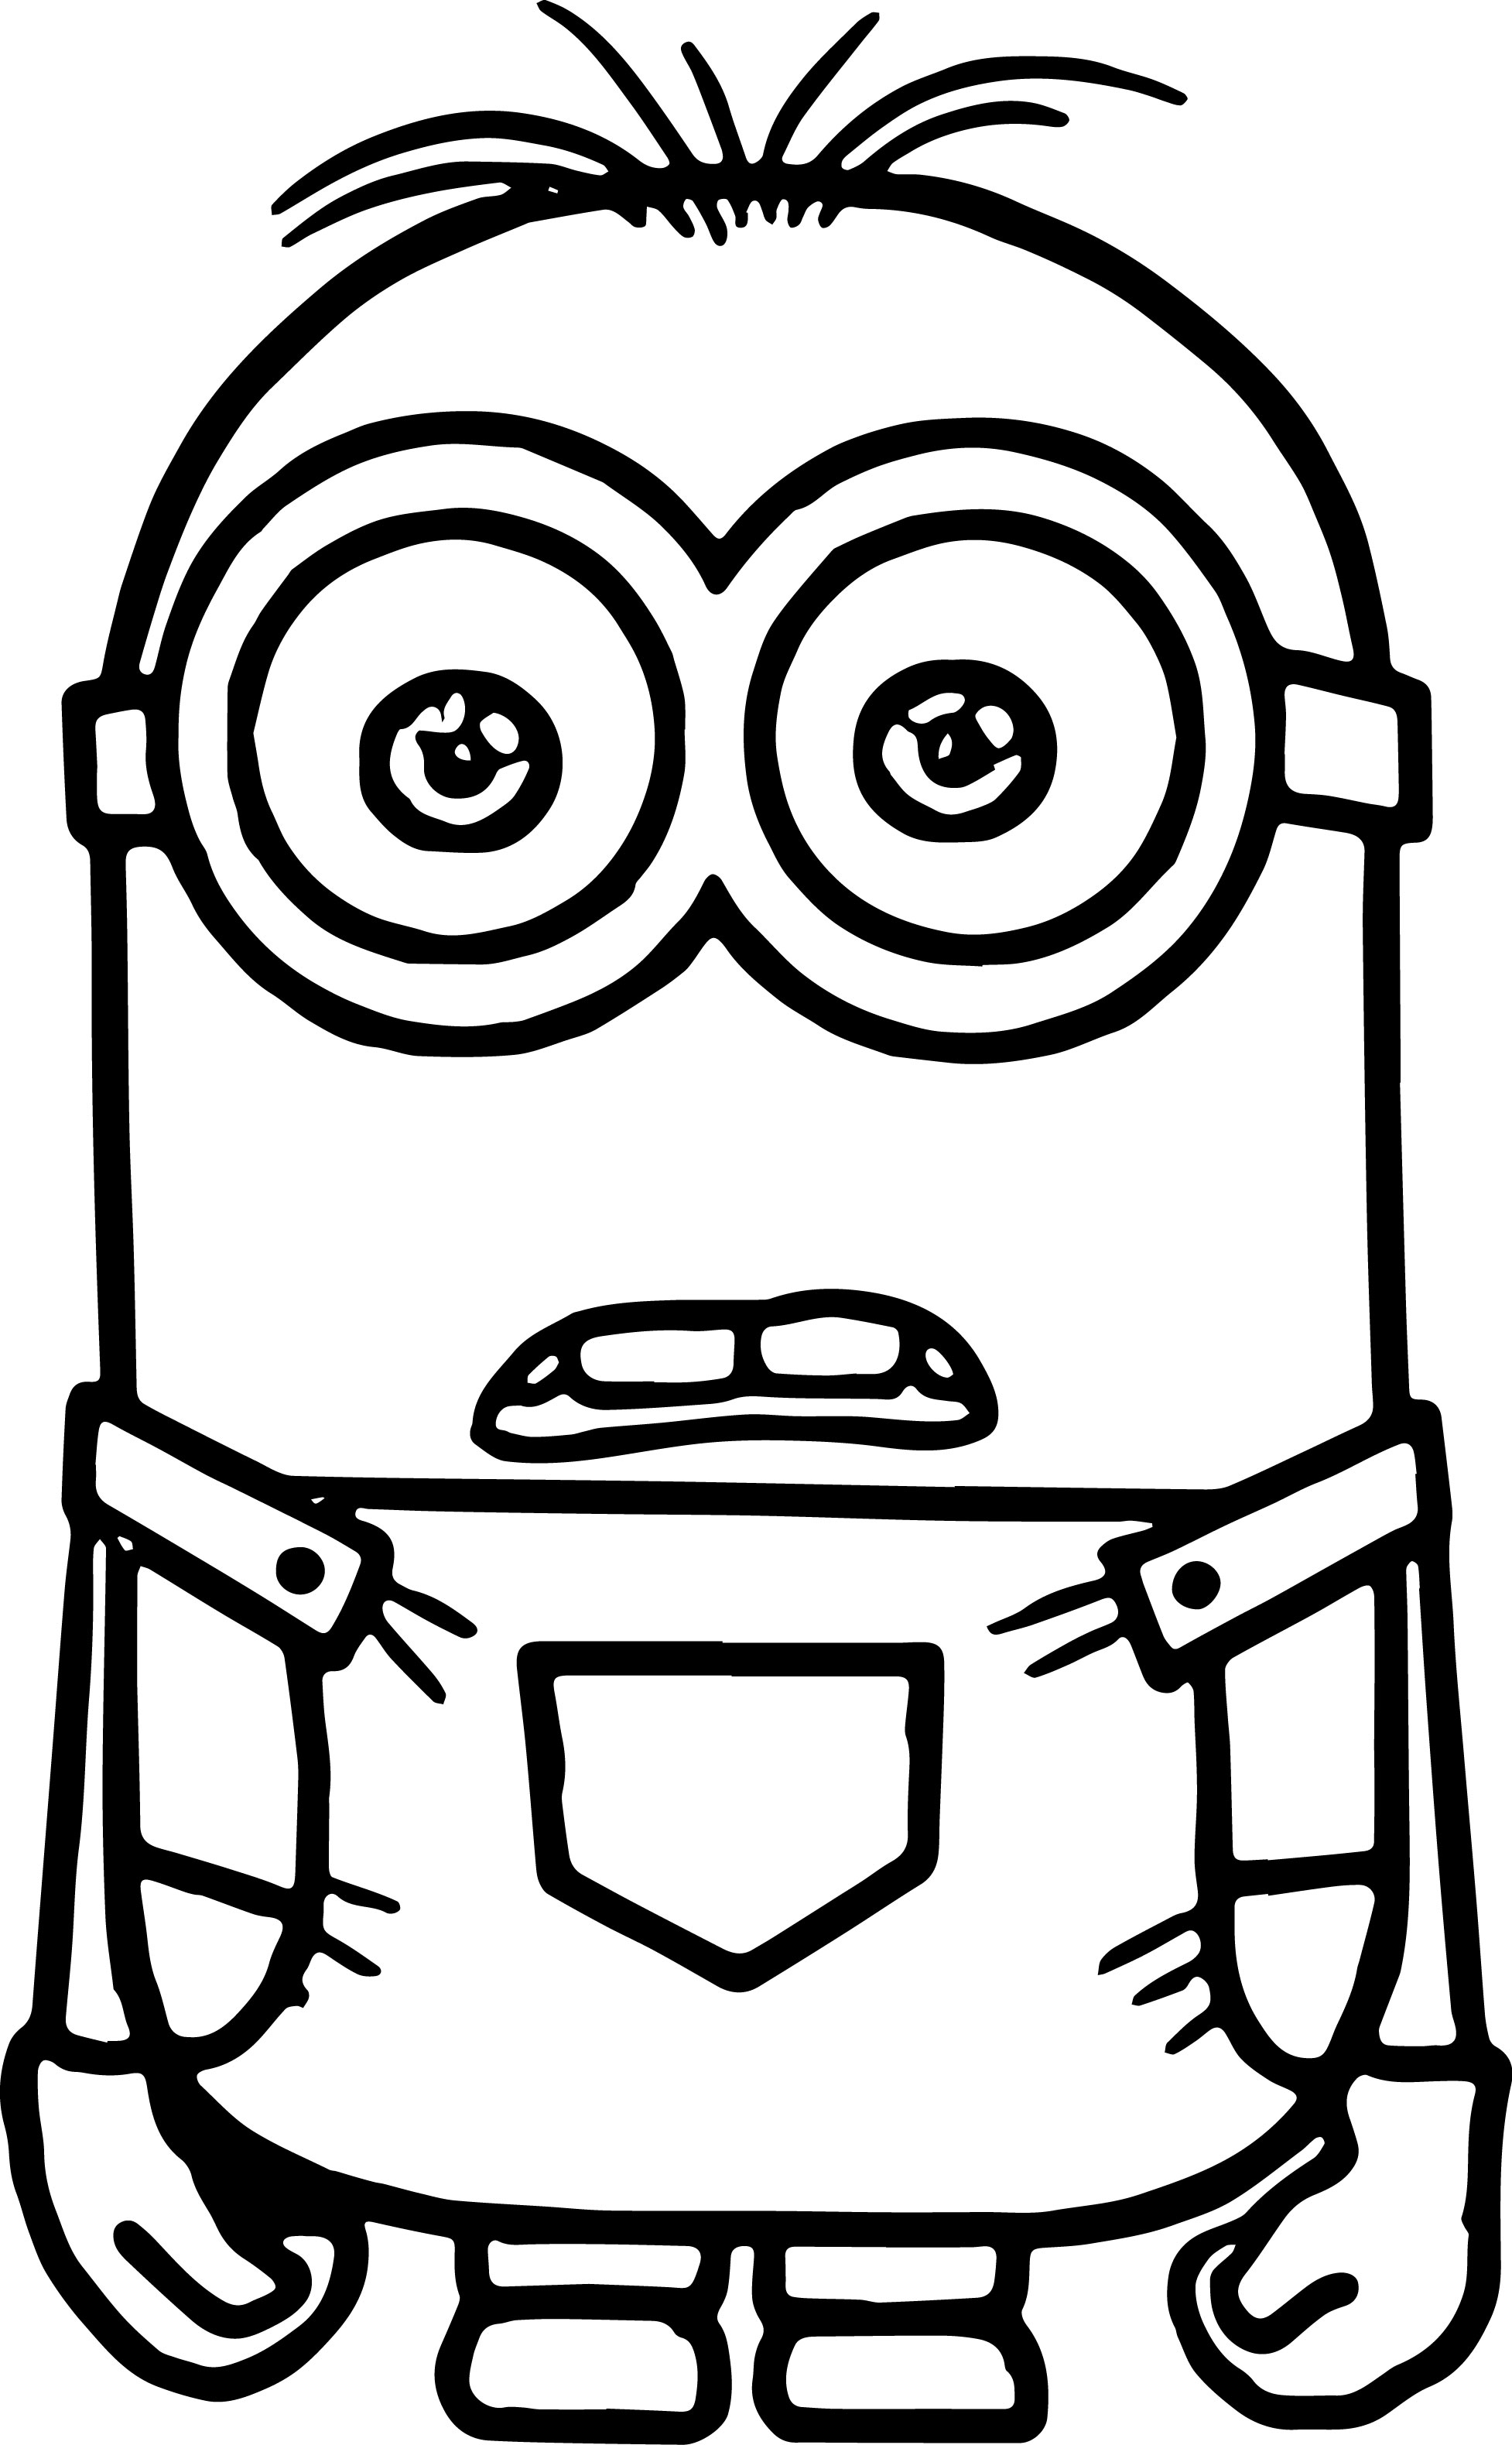 coloring cartoon clipart minion coloring pages fotolipcom rich image and wallpaper coloring clipart cartoon